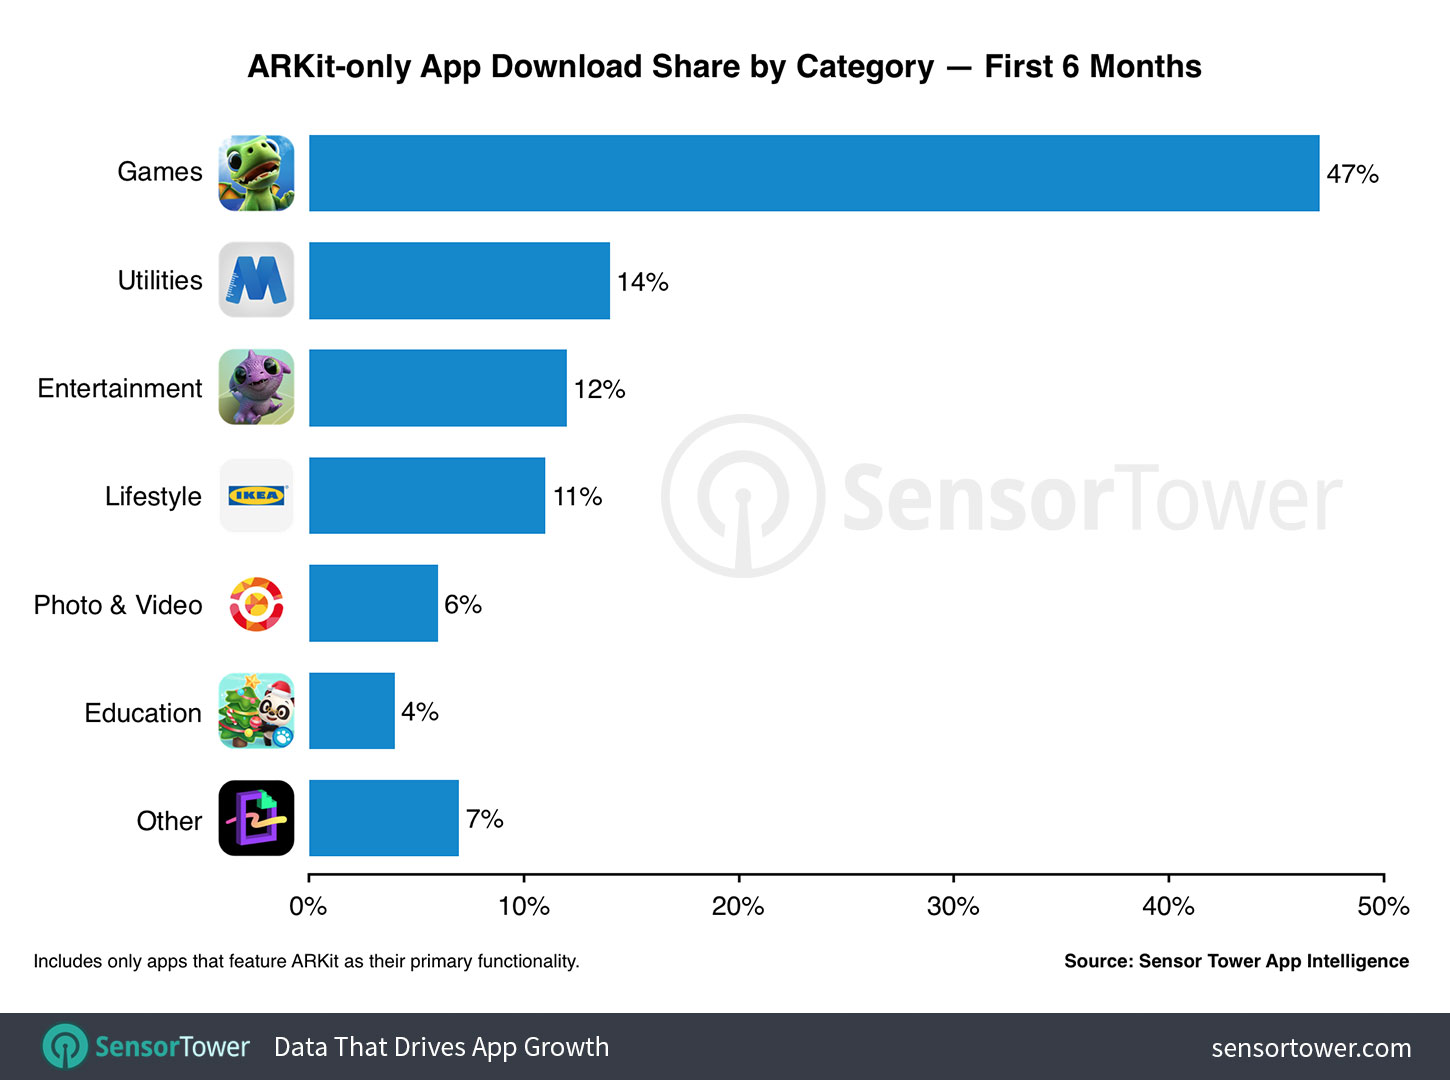 Chart showing category share of all ARKit-only app downloads from the App Store worldwide since September 2017  - arkit apps by category six months - ARKit-only Apps Surpass 13 Million Downloads in First Six Months, Nearly Half from Games